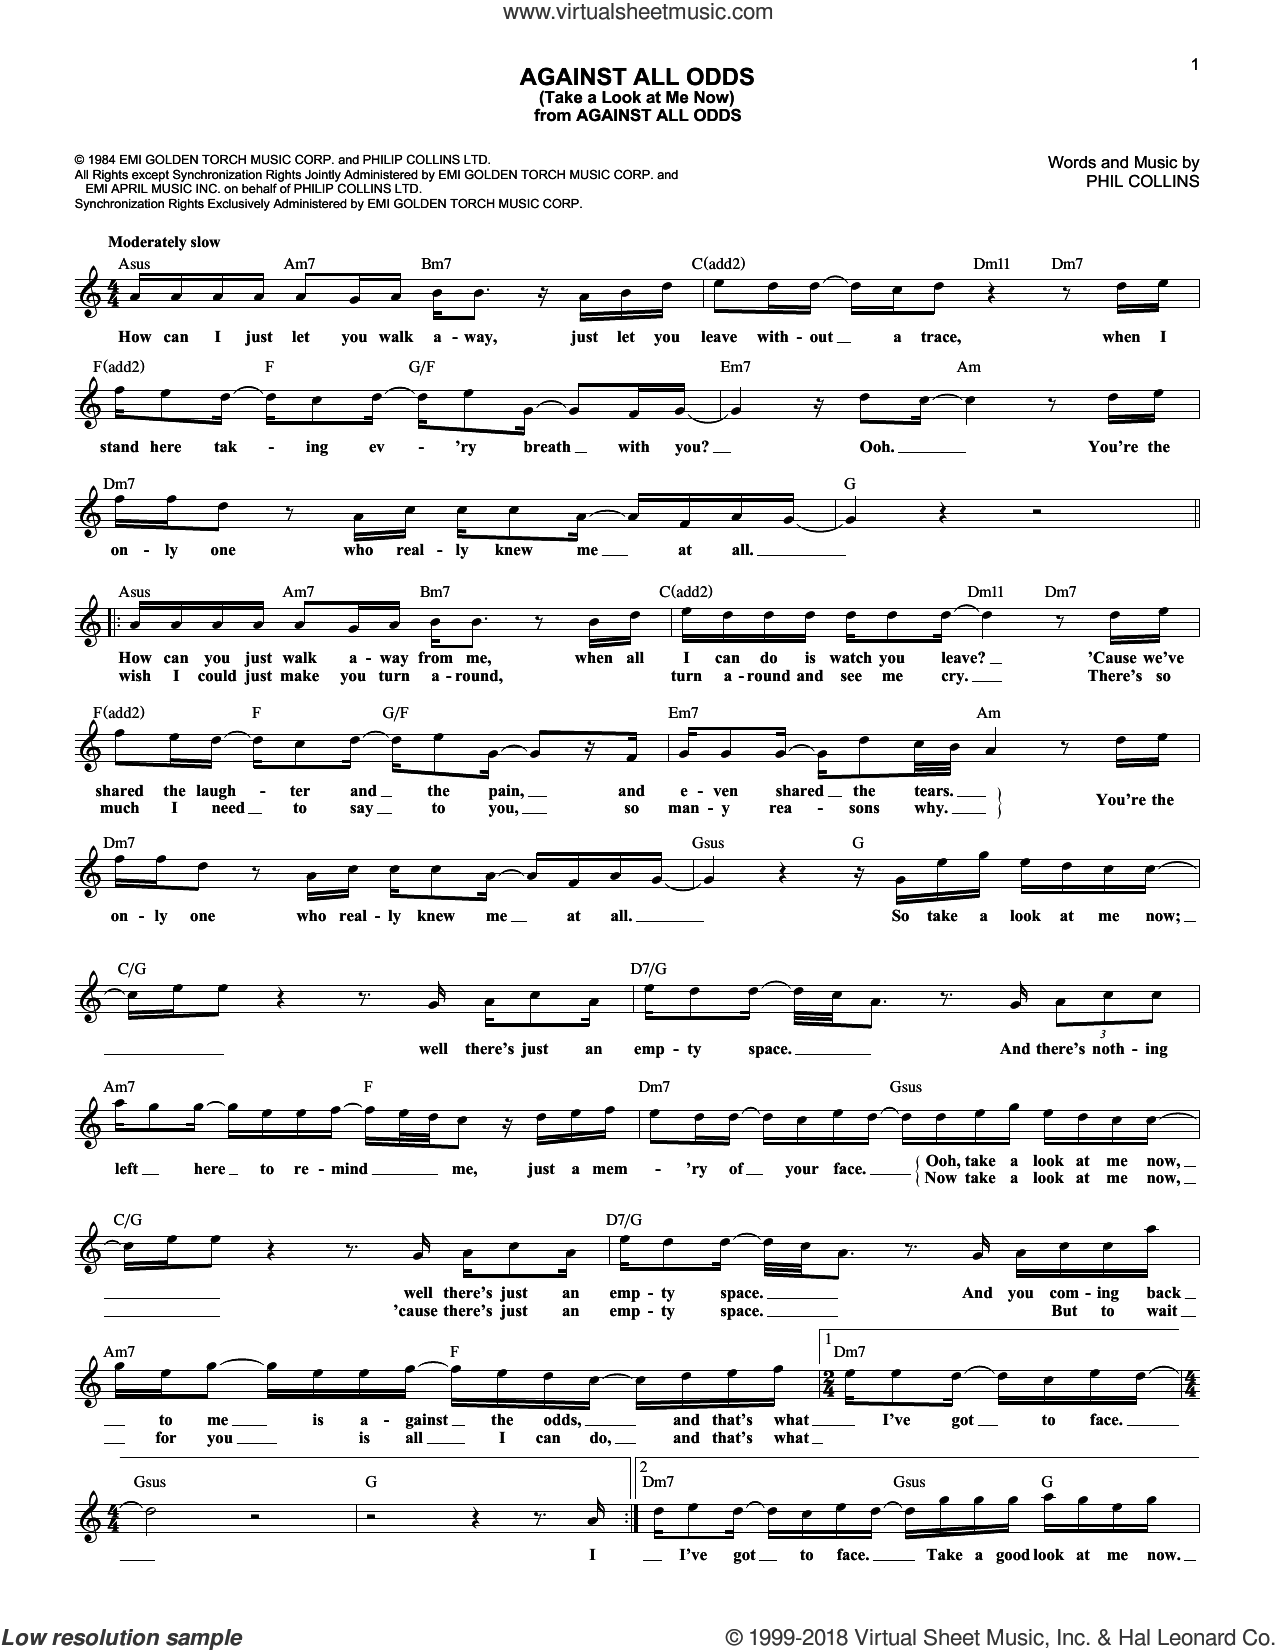 Against All Odds (Take A Look At Me Now) sheet music for voice and other instruments (fake book) by Phil Collins, intermediate skill level